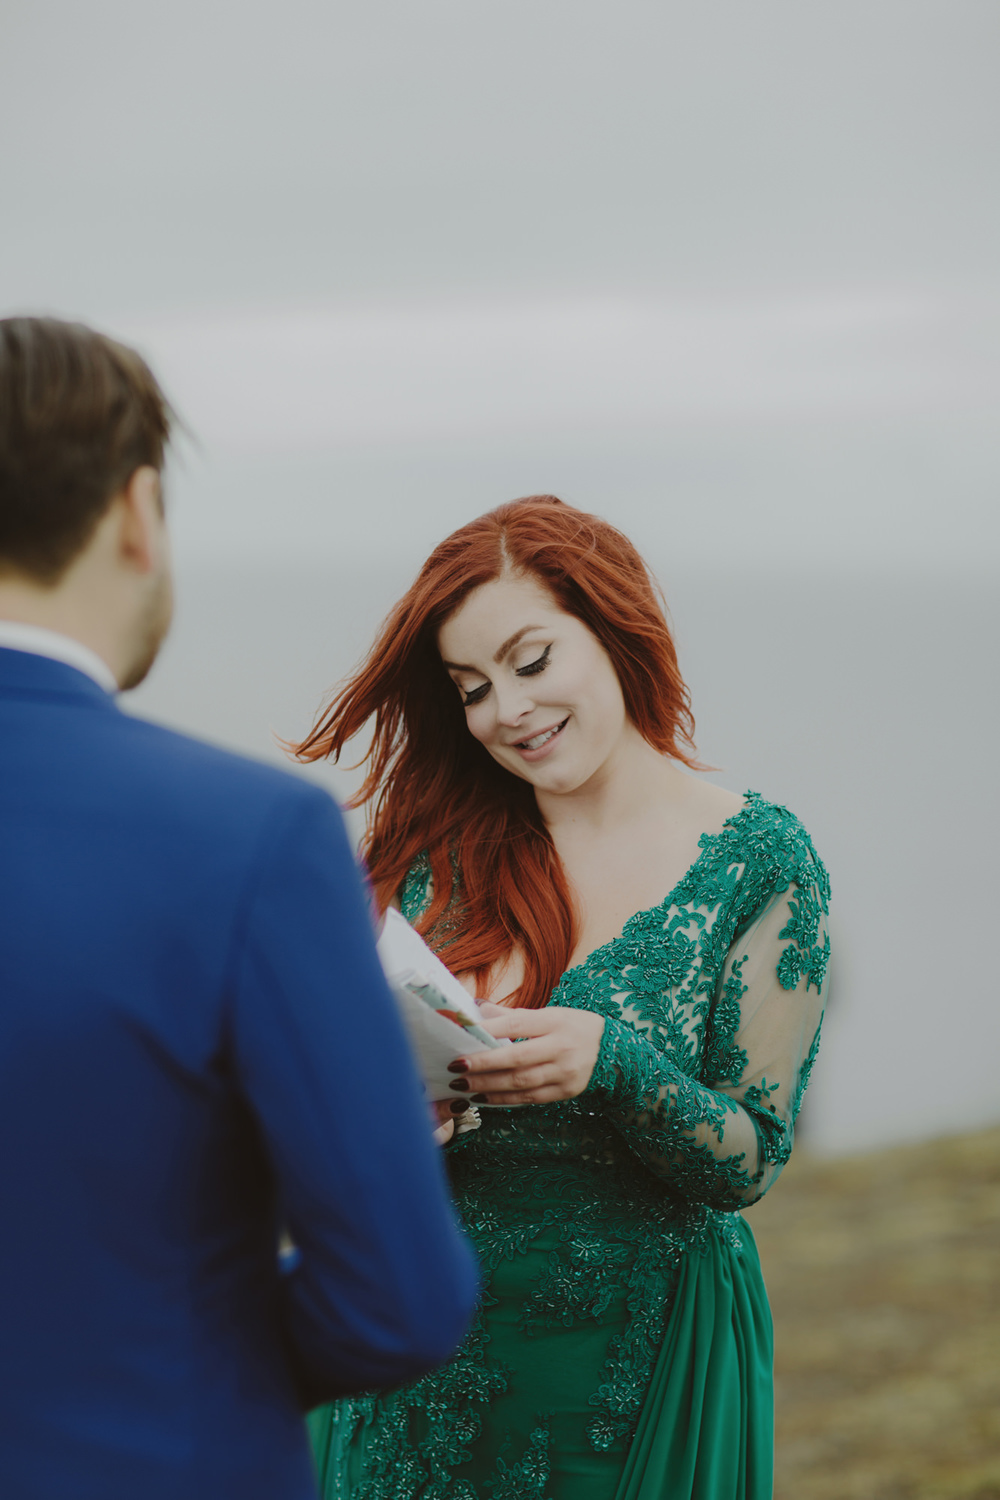 iceland_elopement_wedding_sammblake_046.jpg